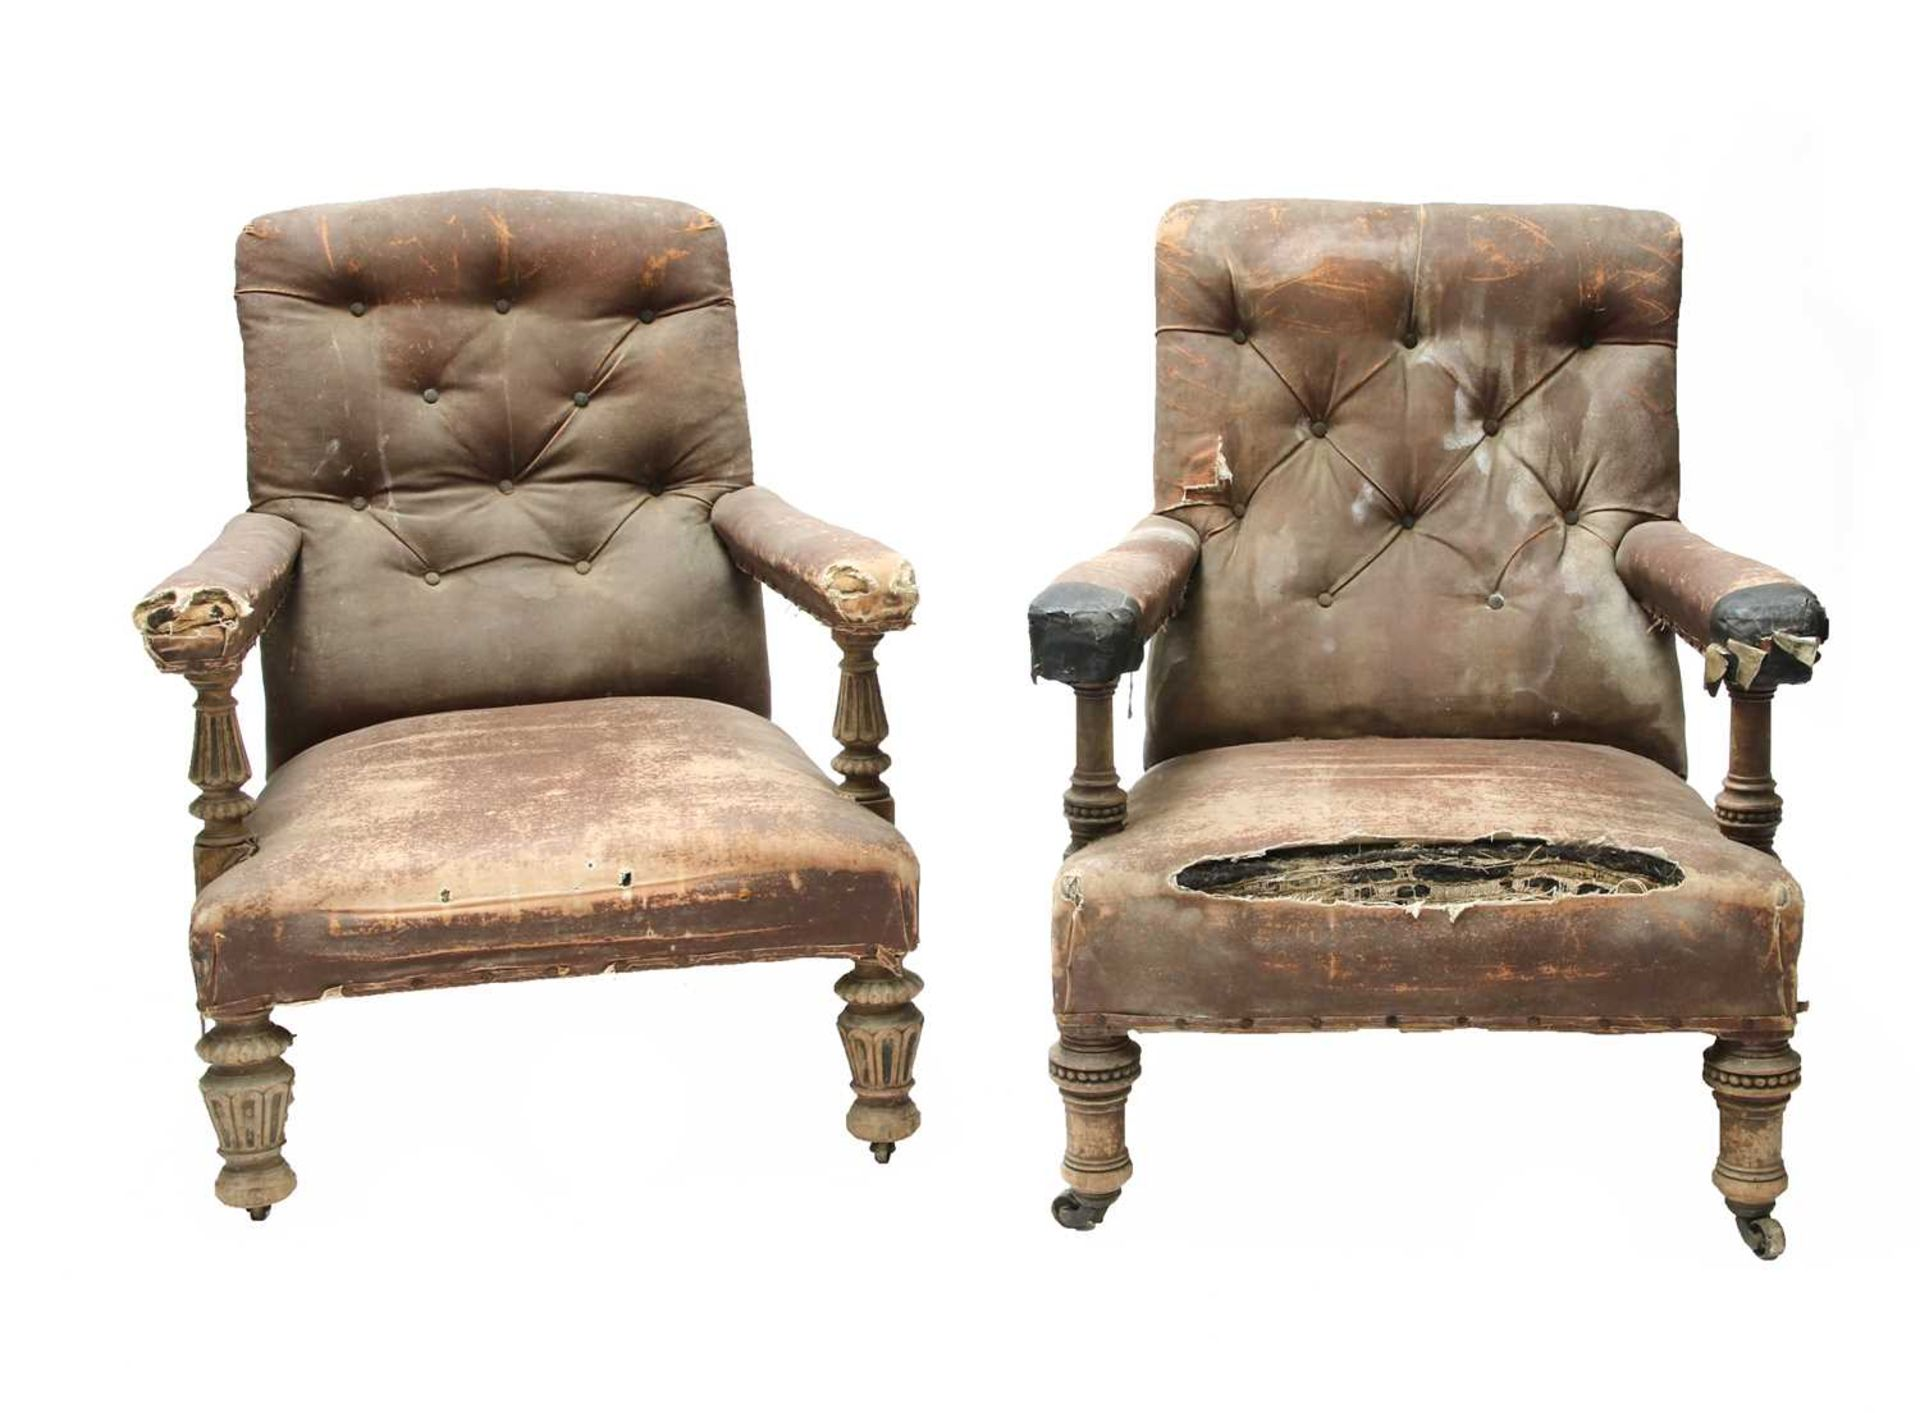 Two similar library armchairs by Gillow, - Image 2 of 7